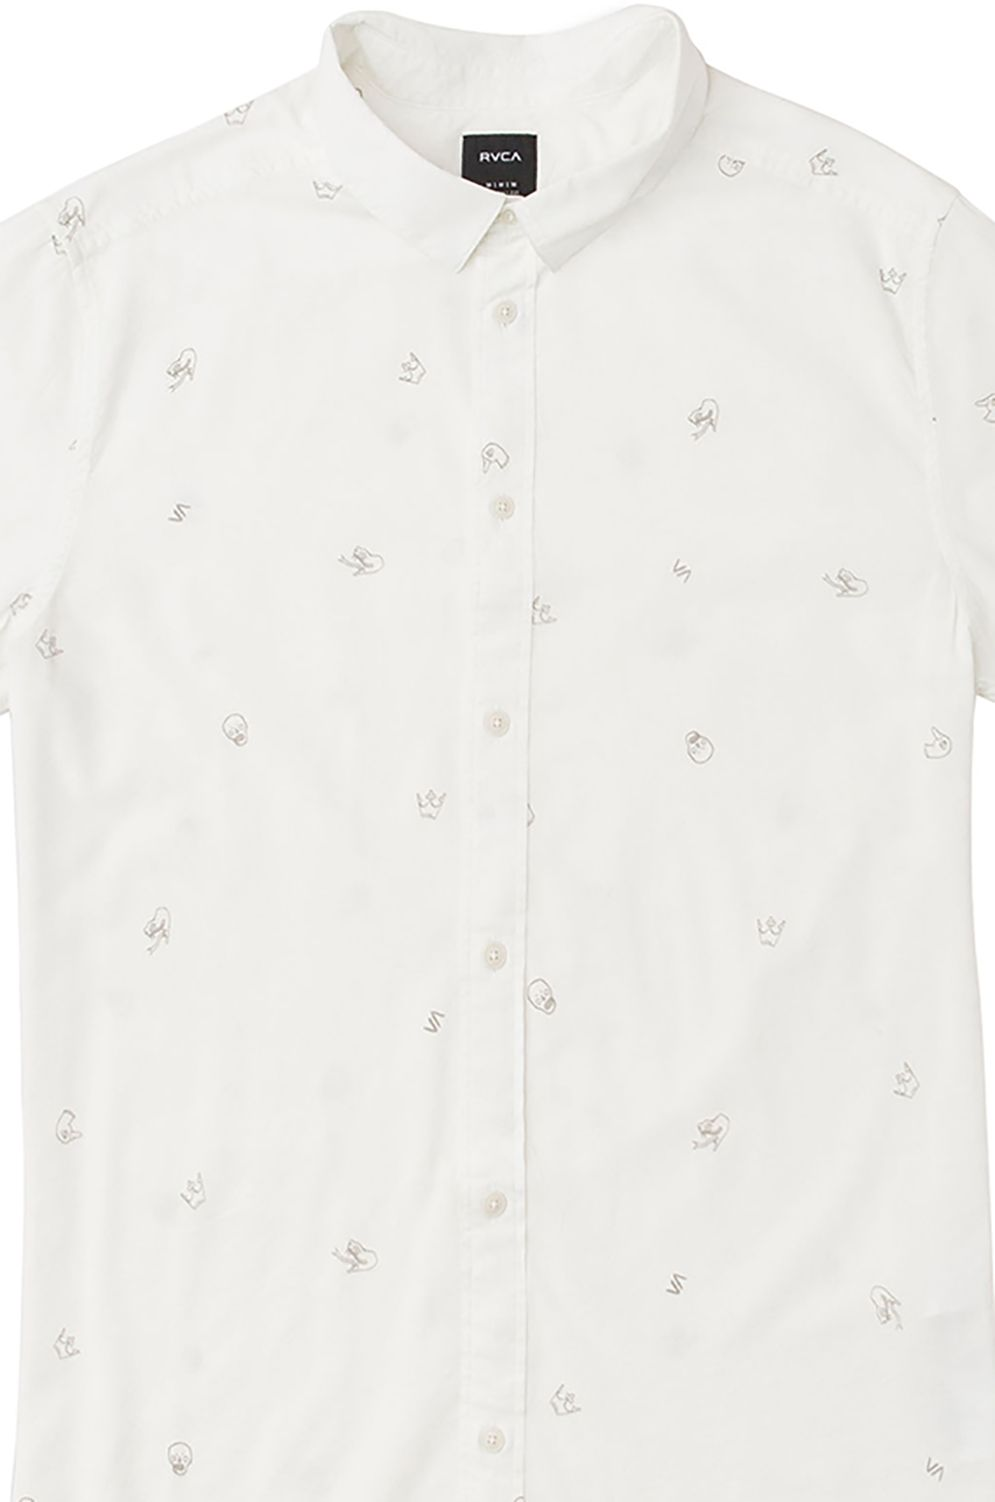 Camisa RVCA POMMIER BUDS SS ANDREW POMMIER Antique White